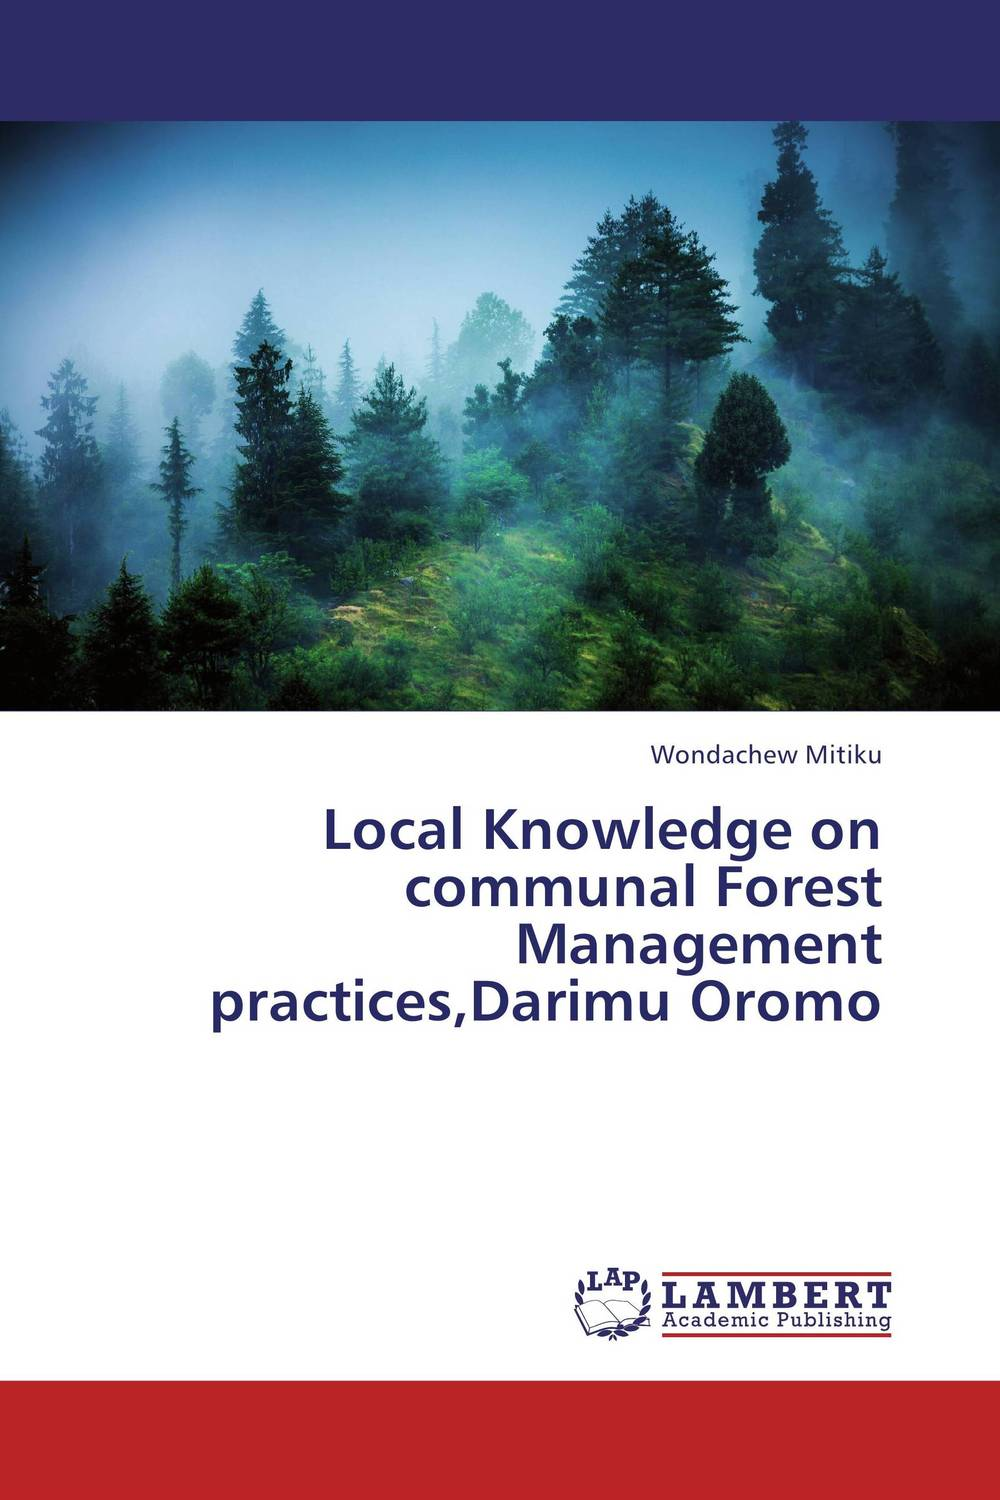 где купить Local Knowledge on communal Forest Management practices,Darimu Oromo по лучшей цене